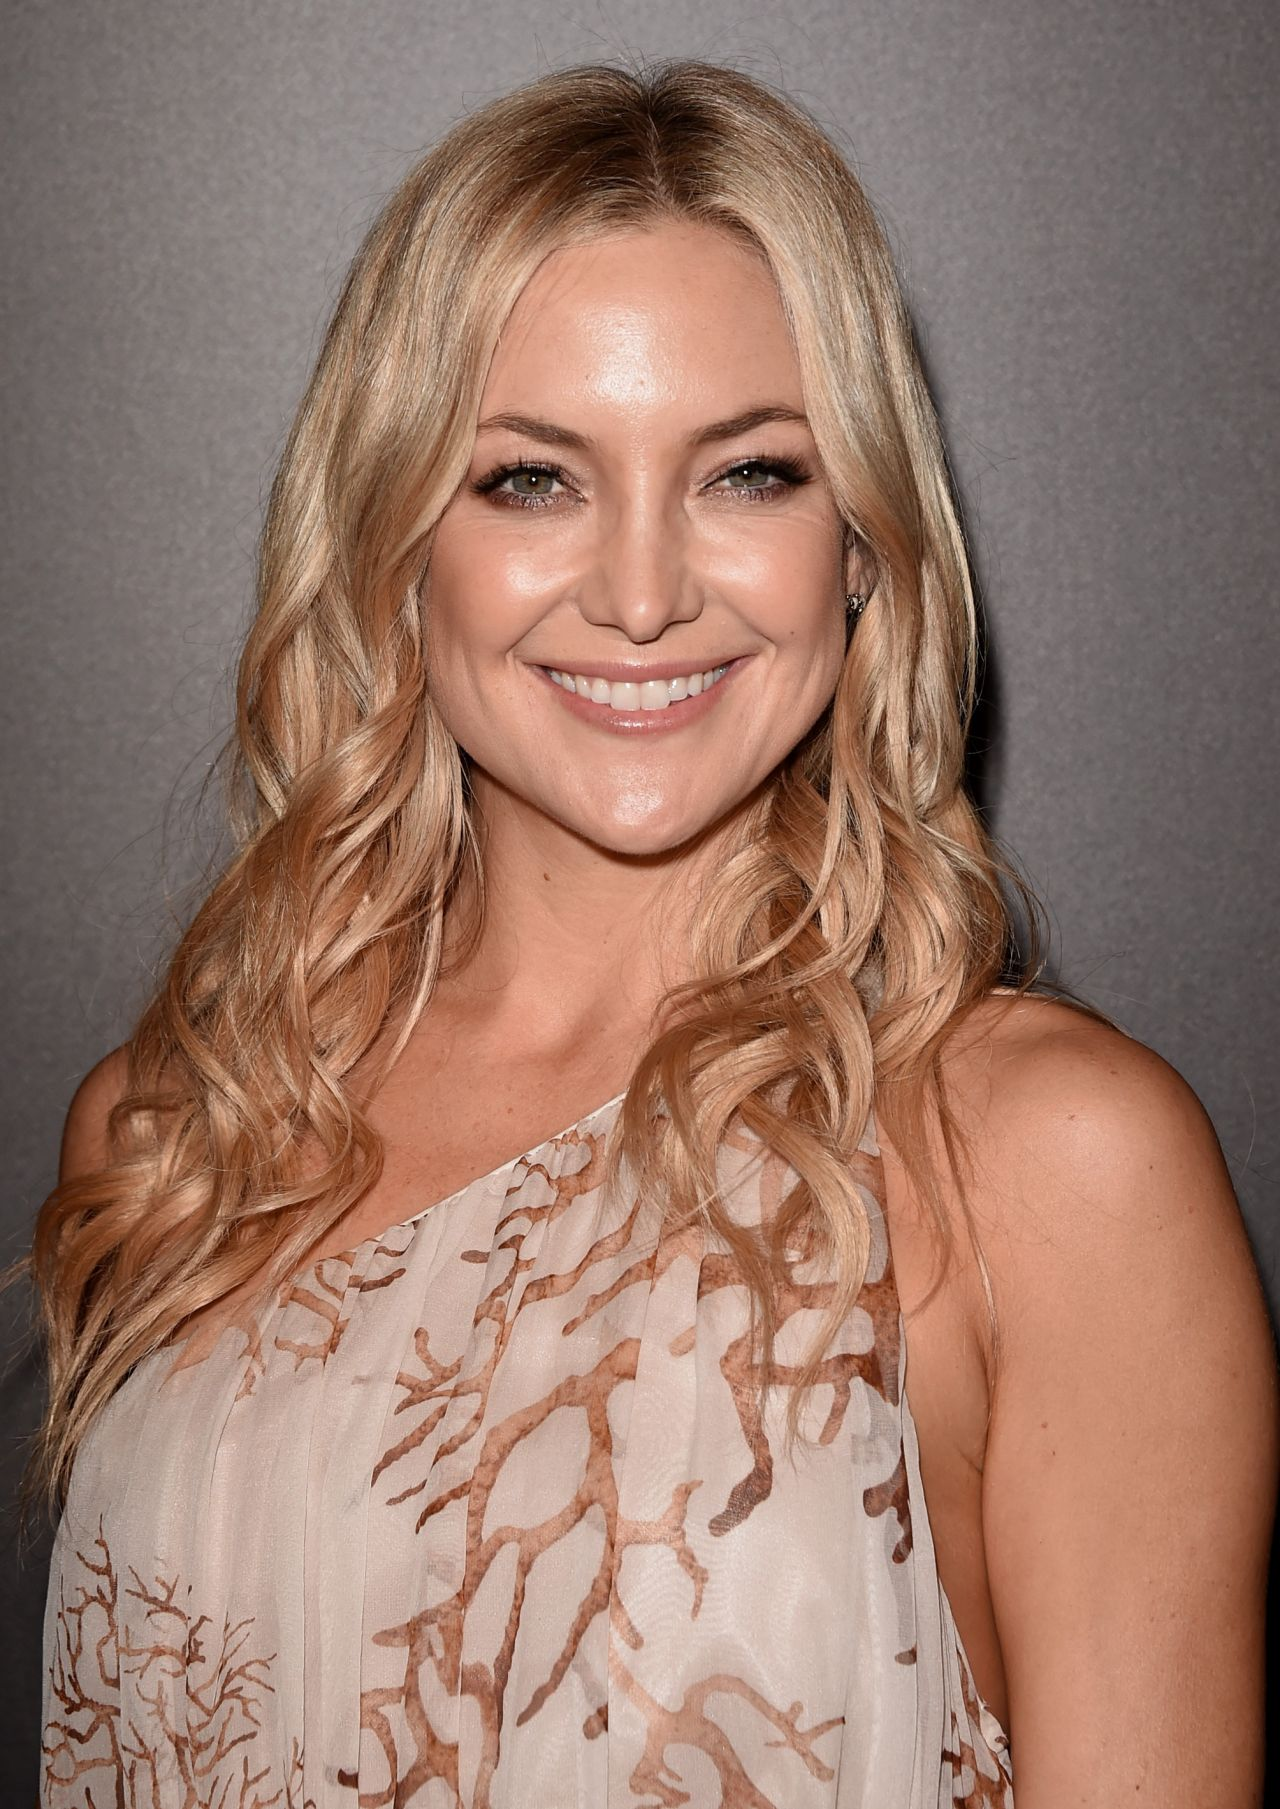 Kate Hudson – 2014 PEOPLE Magazine Awards in Beverly Hills Kate Hudson